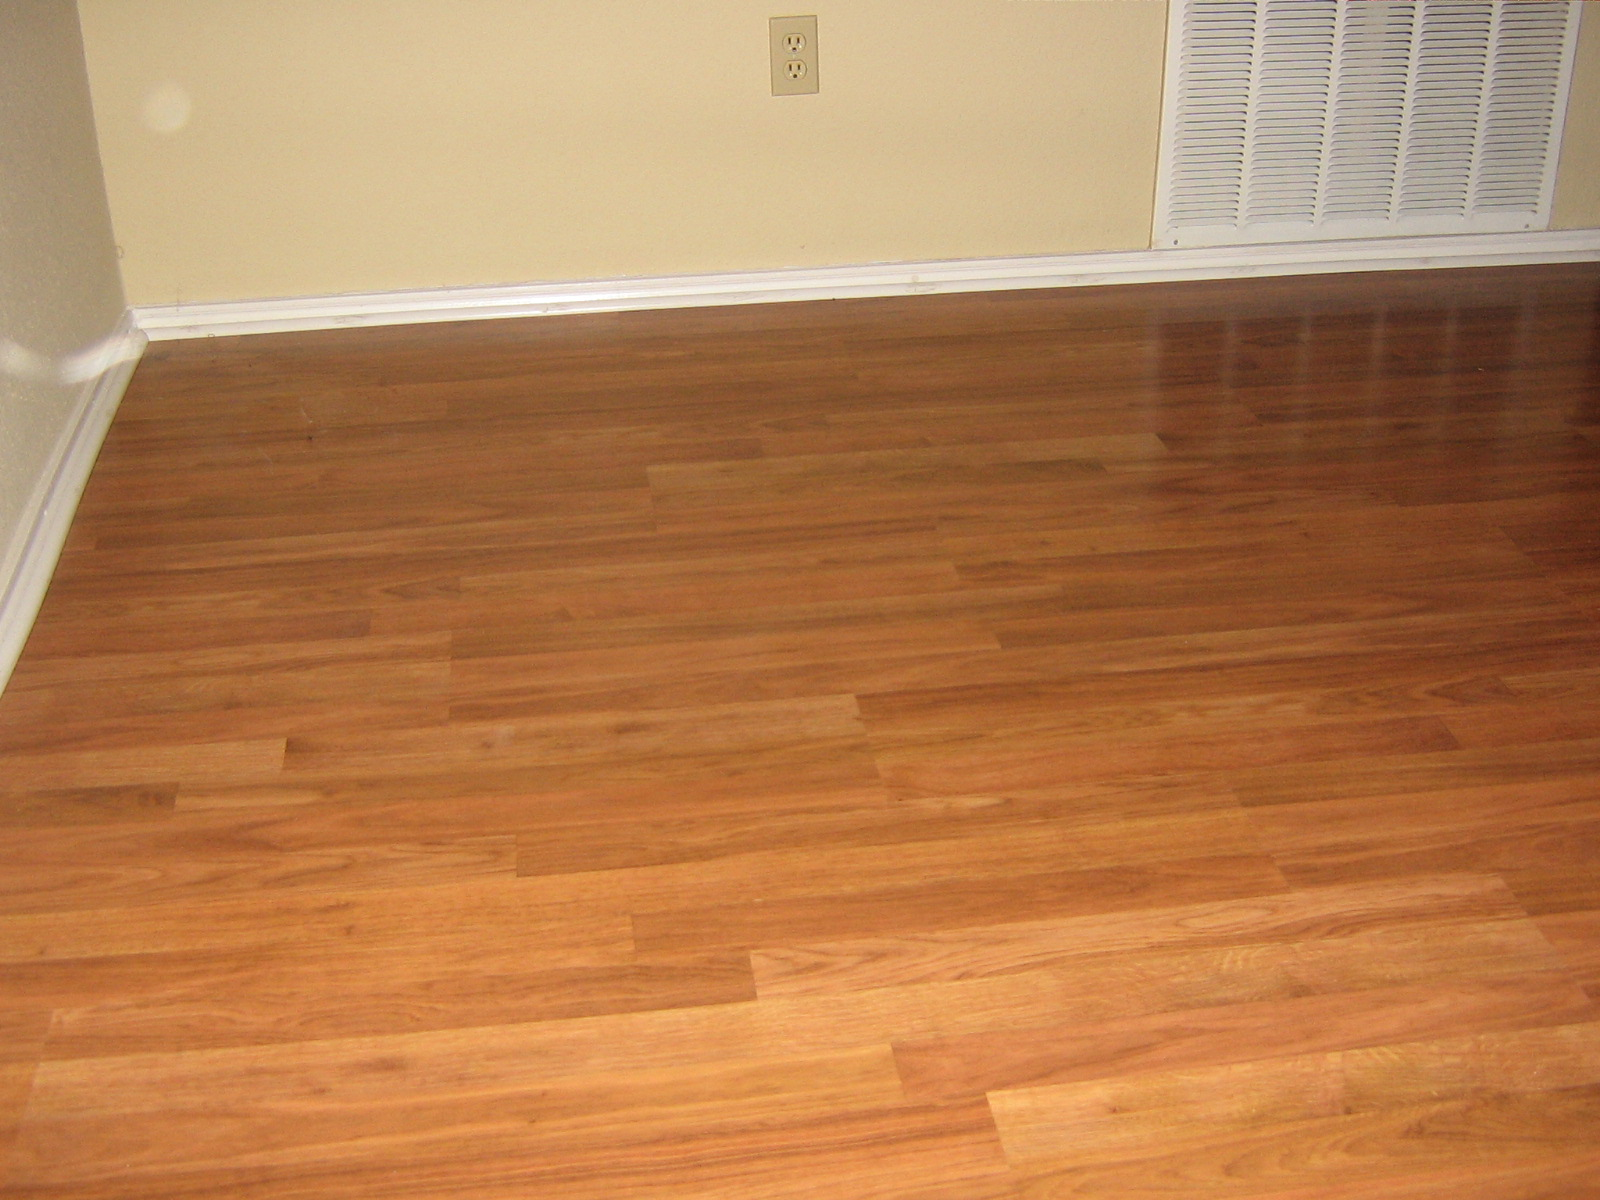 Wood And Laminate Flooring Of Laminate Flooring Wood And Laminate Flooring